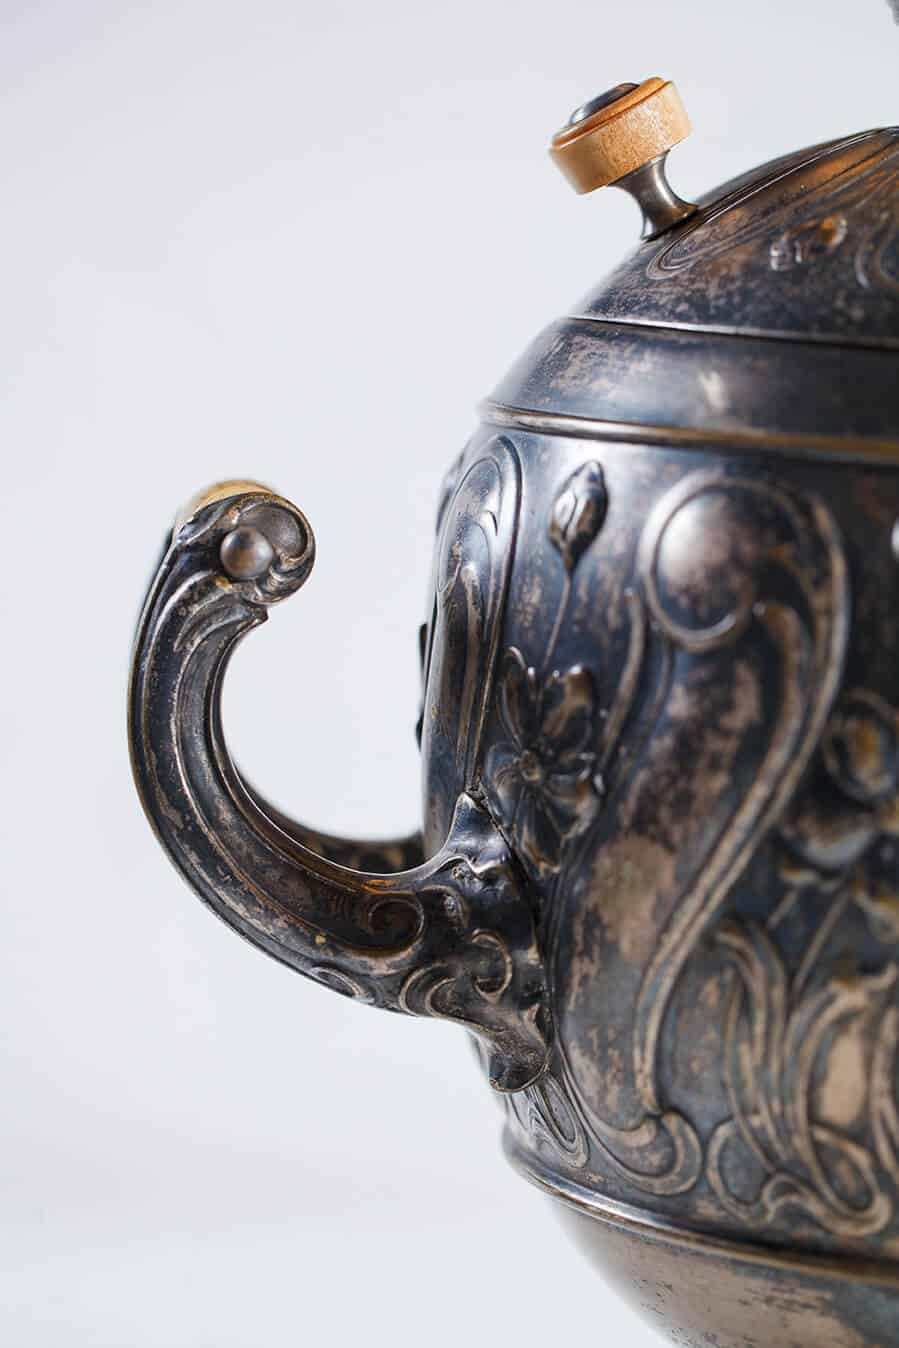 KB 577 Egg shaped samovar with floral patterns | Museum of Samovars